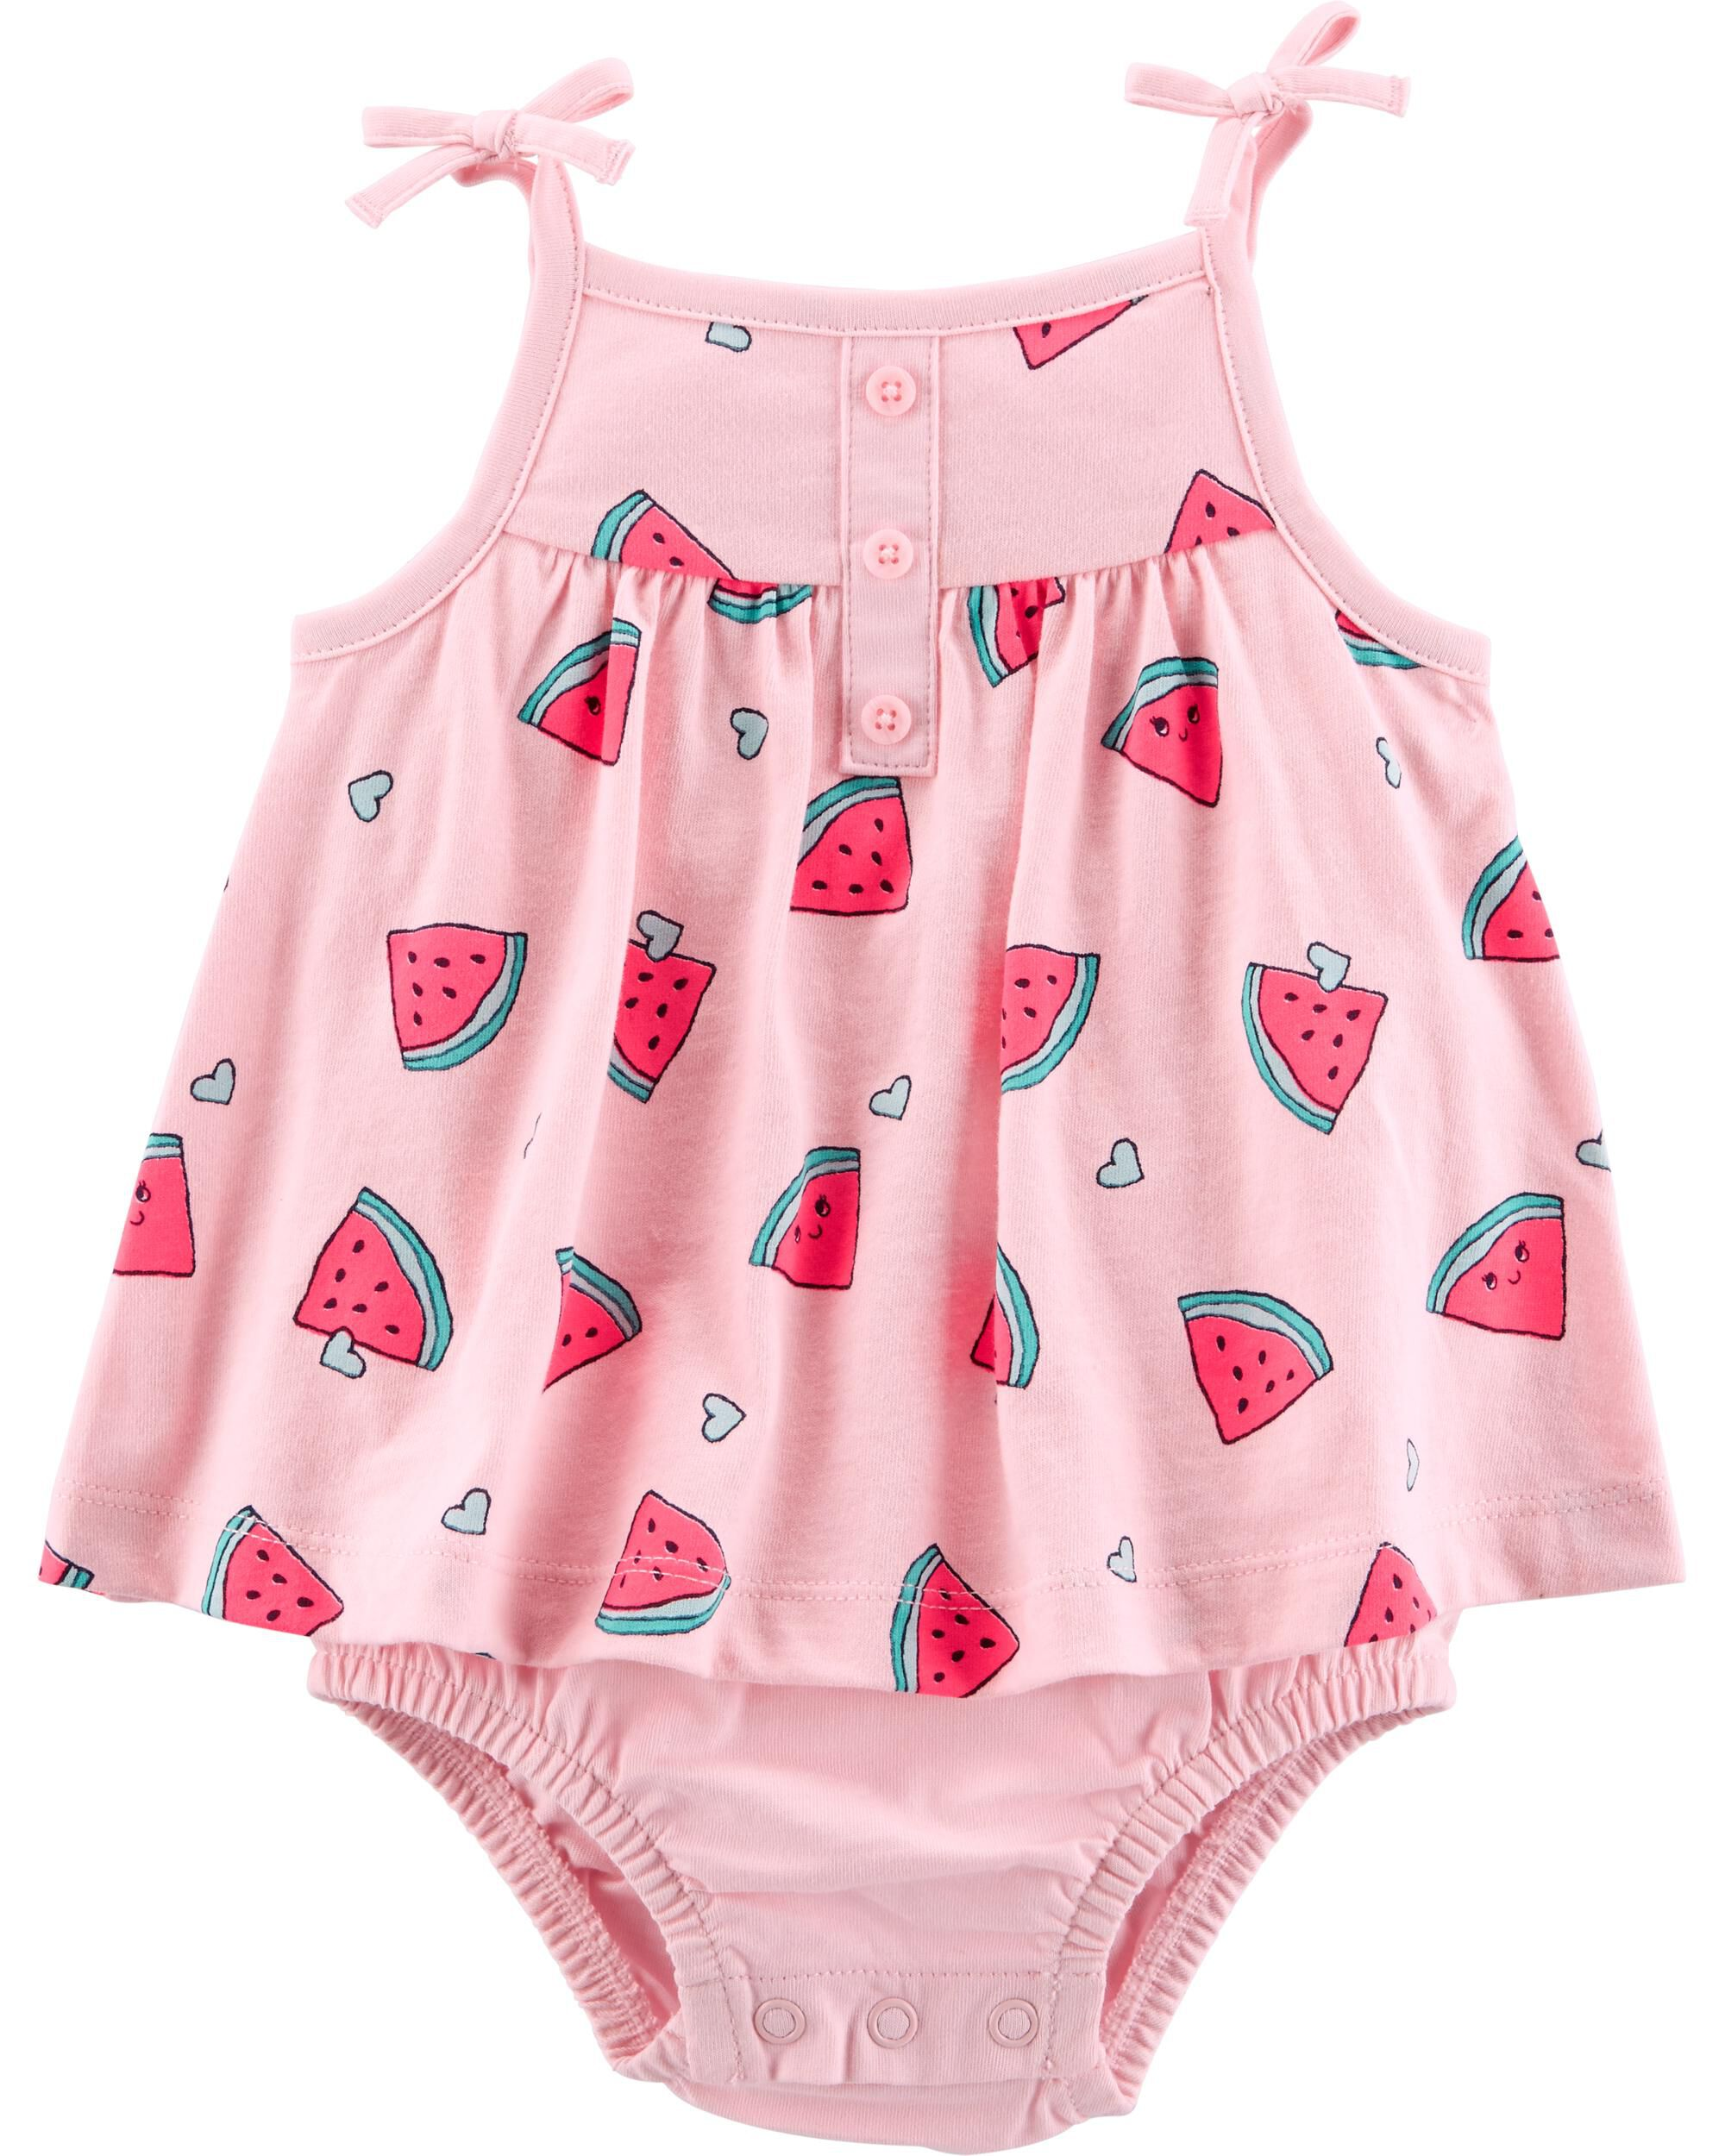 Cheap Price 0-3 Months Baby Girl Tutu And Cardigan Top Watermelons Girls' Clothing (0-24 Months) Clothes, Shoes & Accessories